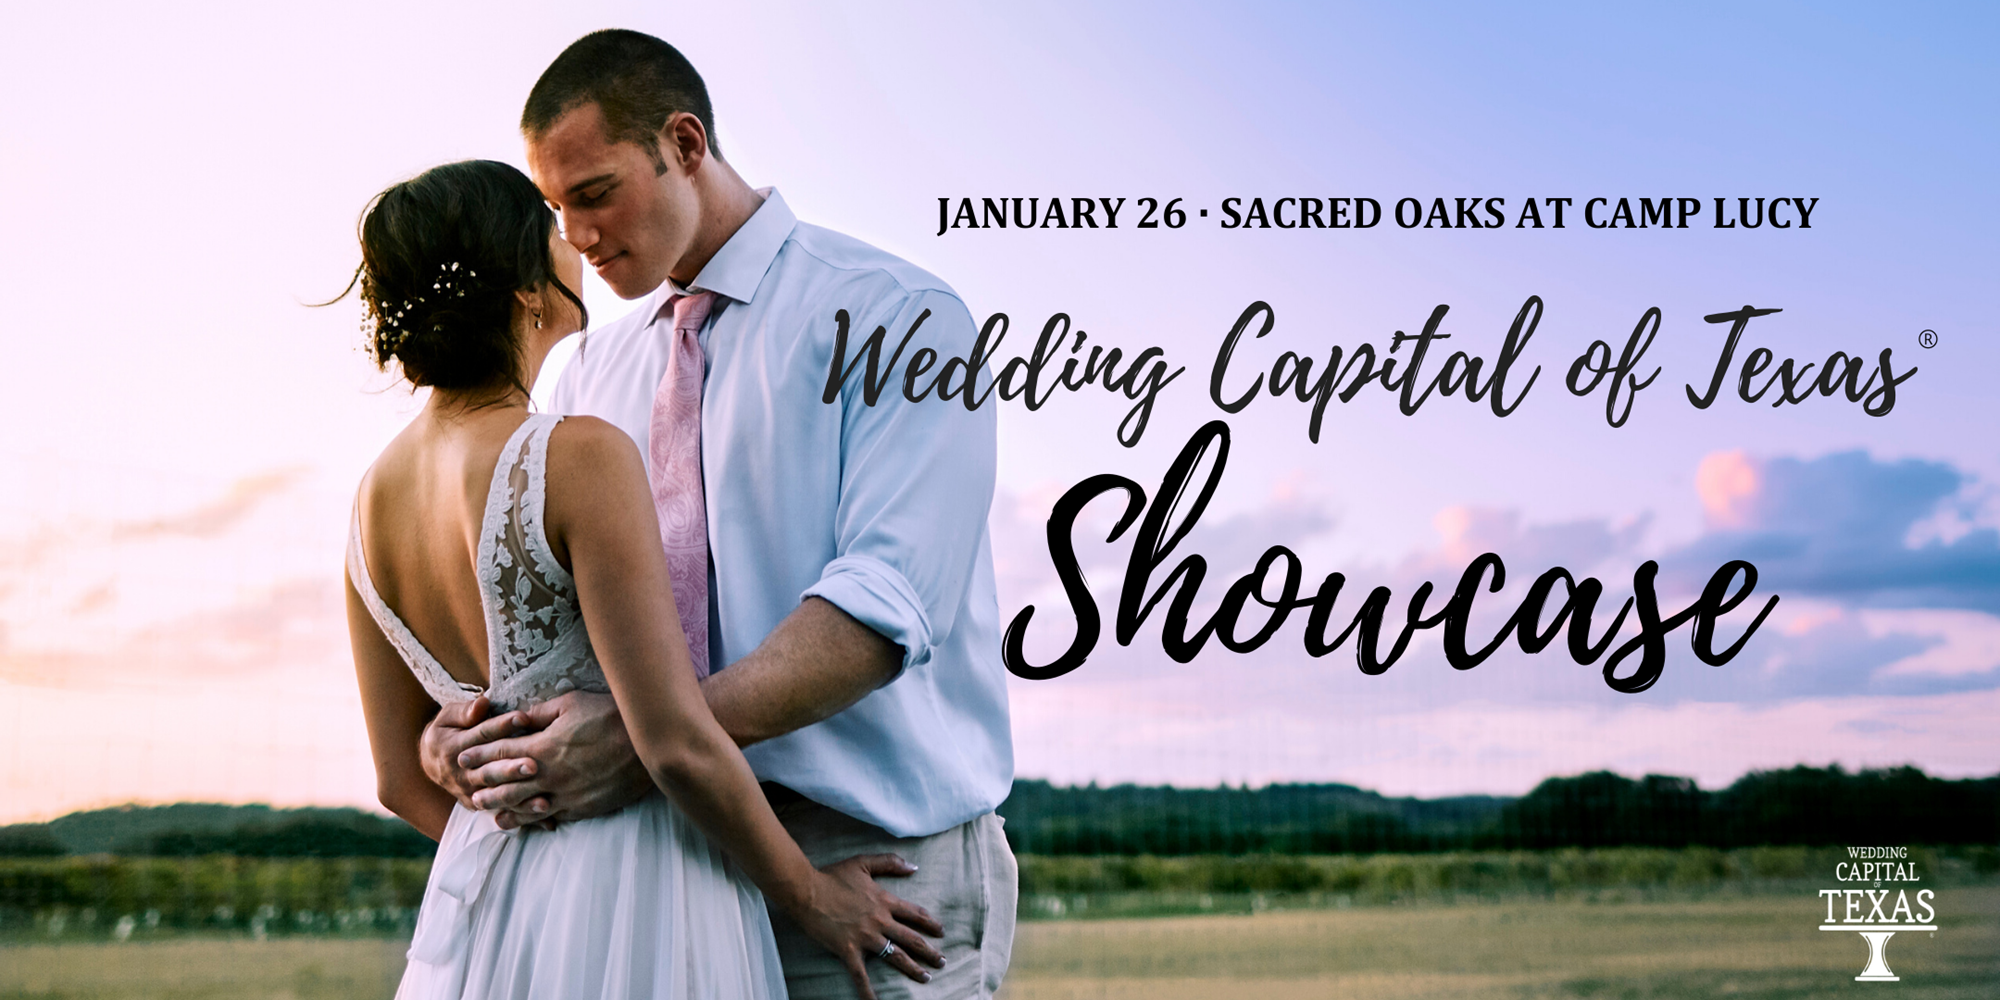 "A man and a woman embracing with the words ""Wedding Capital of Texas Showcase"""